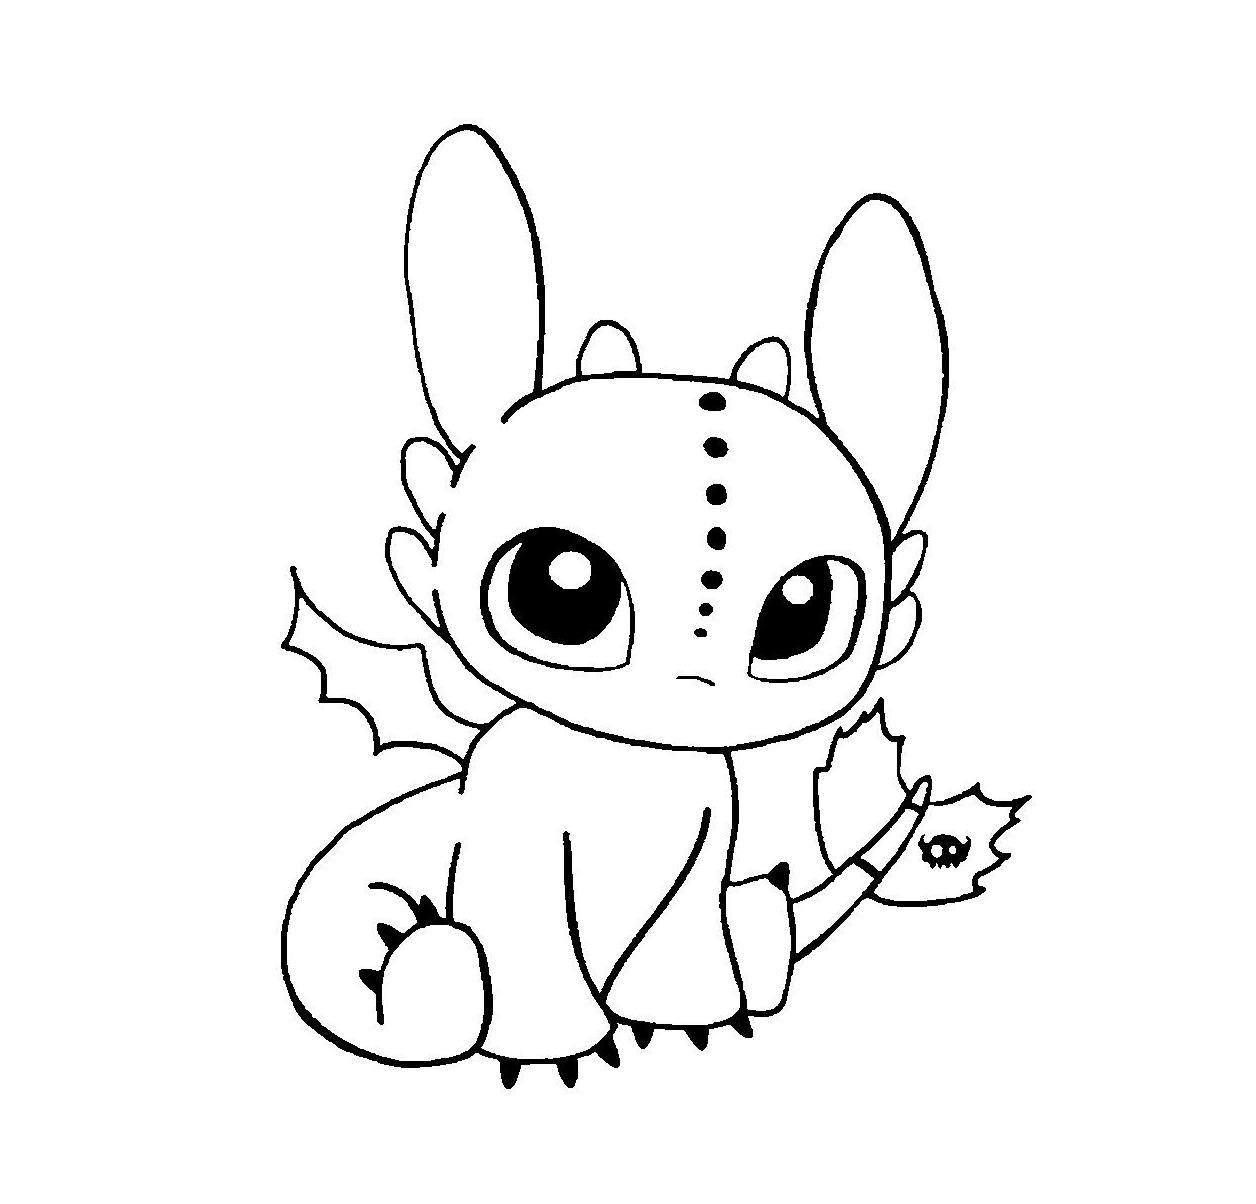 Toothless Baby | Clip holders | Pinterest | Colorin, Para dibujar y ...